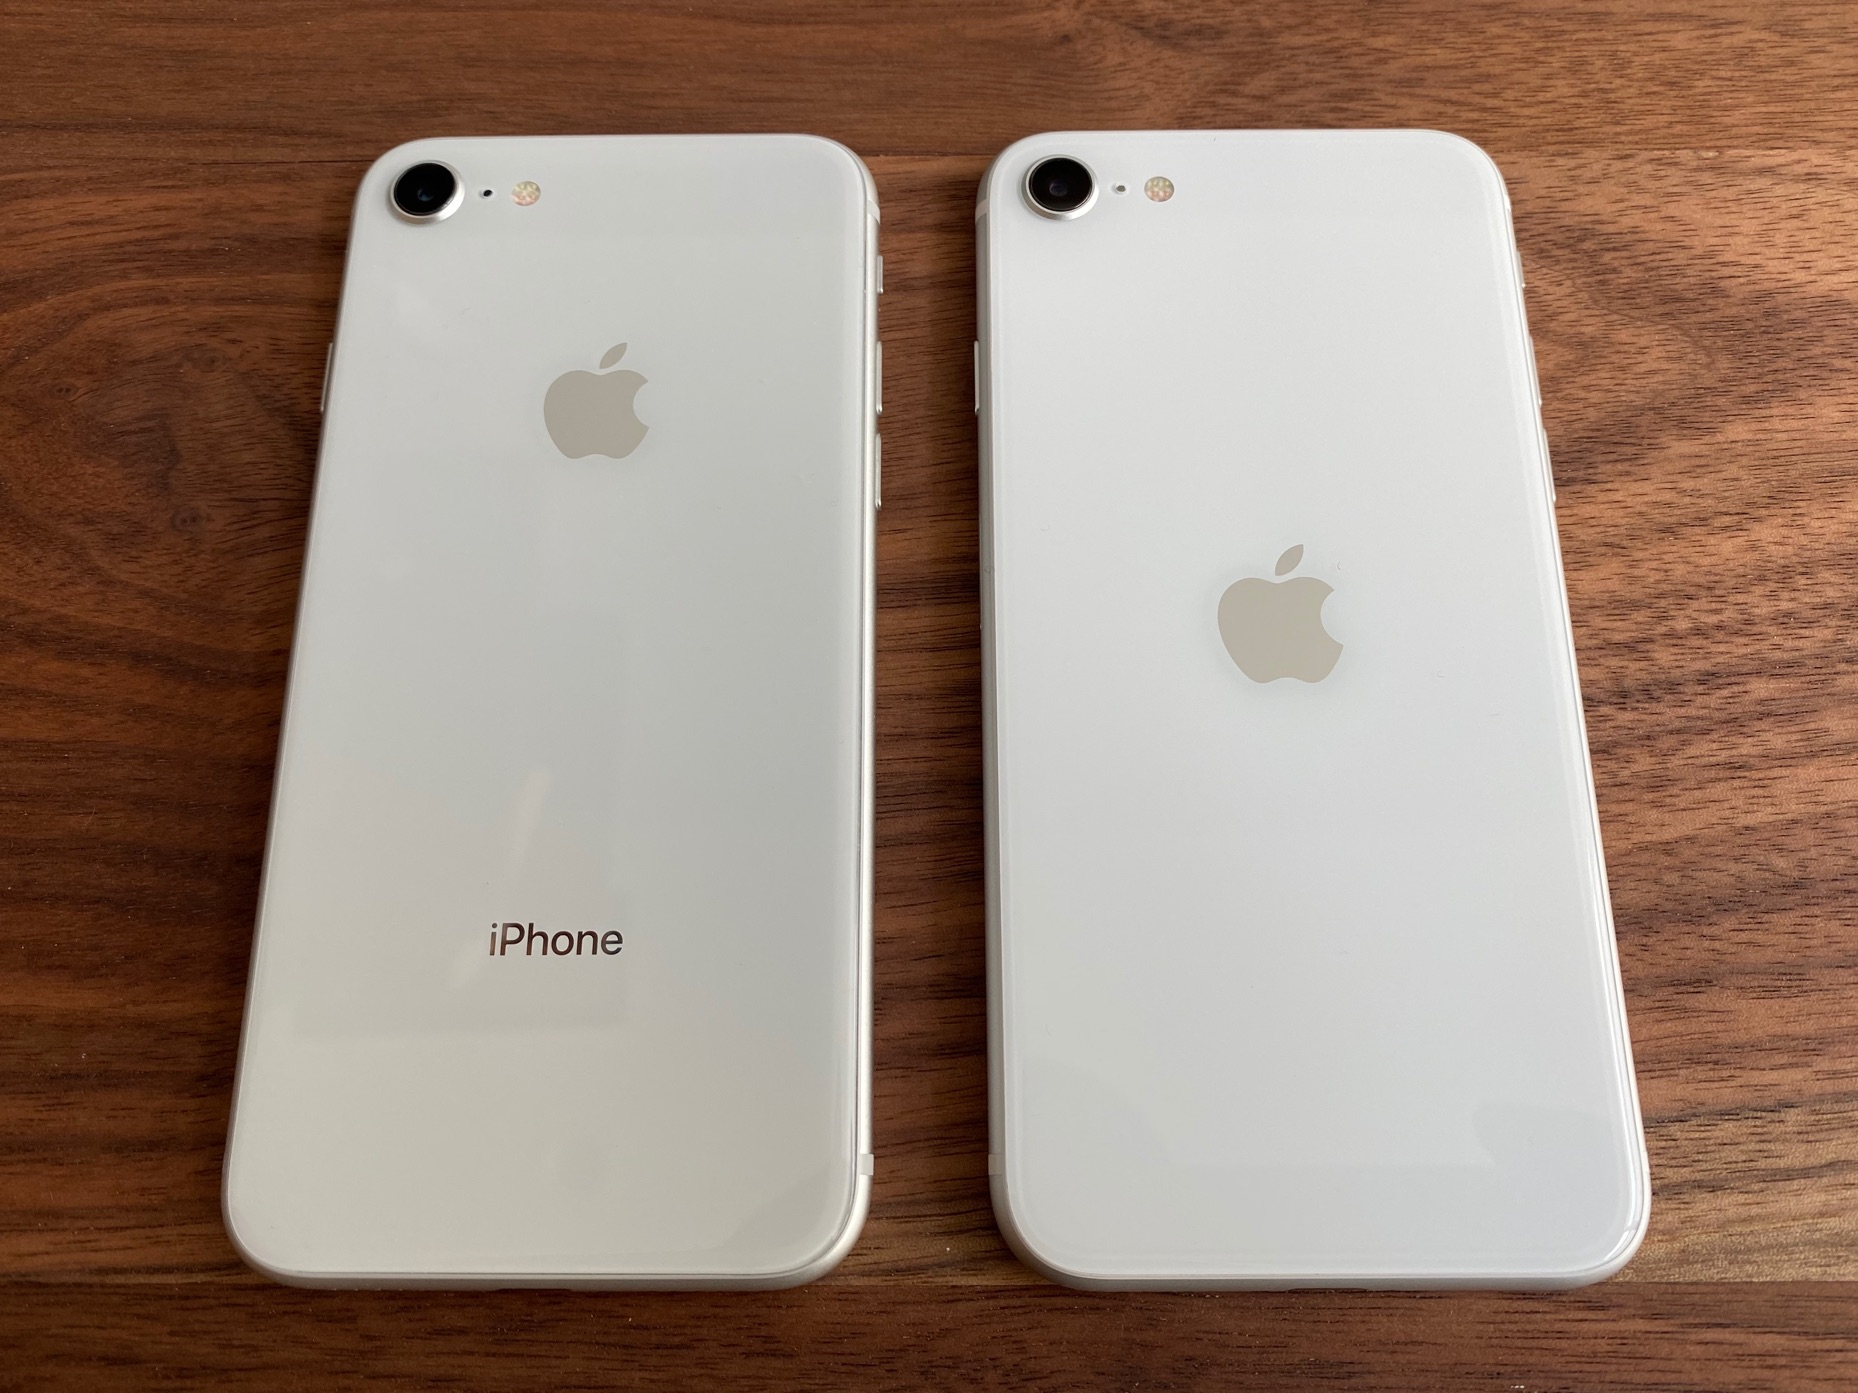 A silver iPhone 8 and white iPhone SE, faces down.